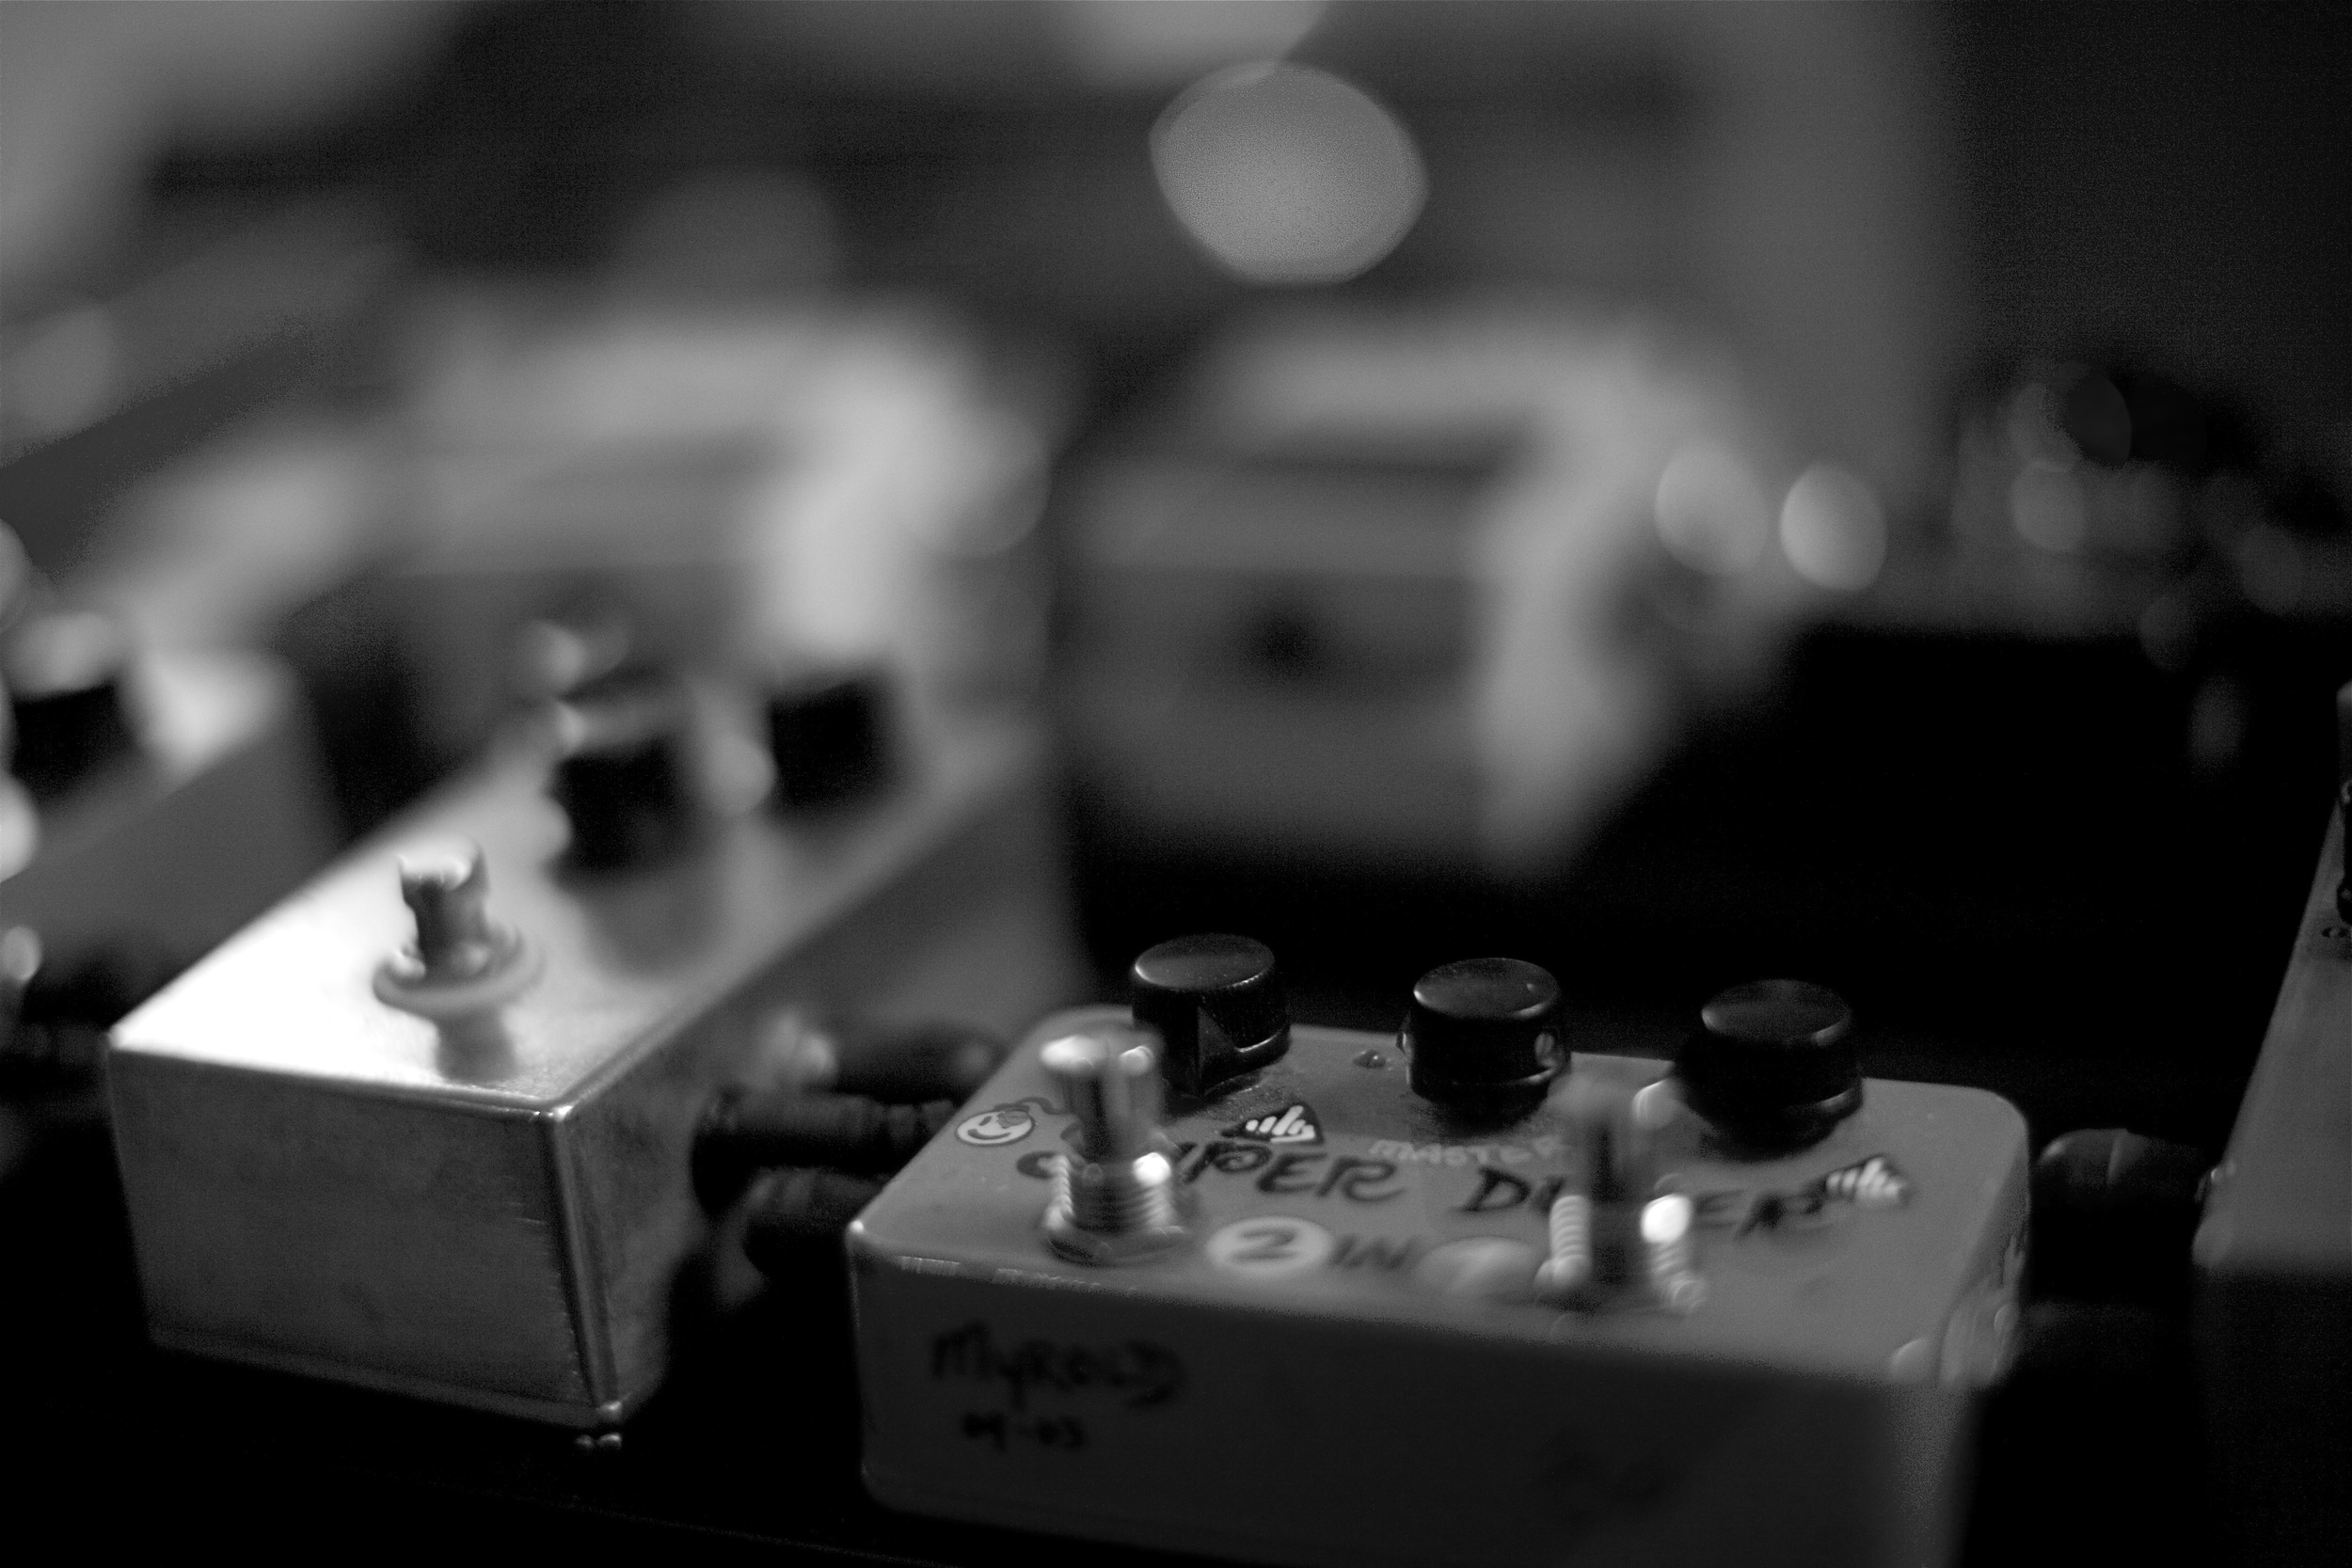 Pedals_Large.jpg